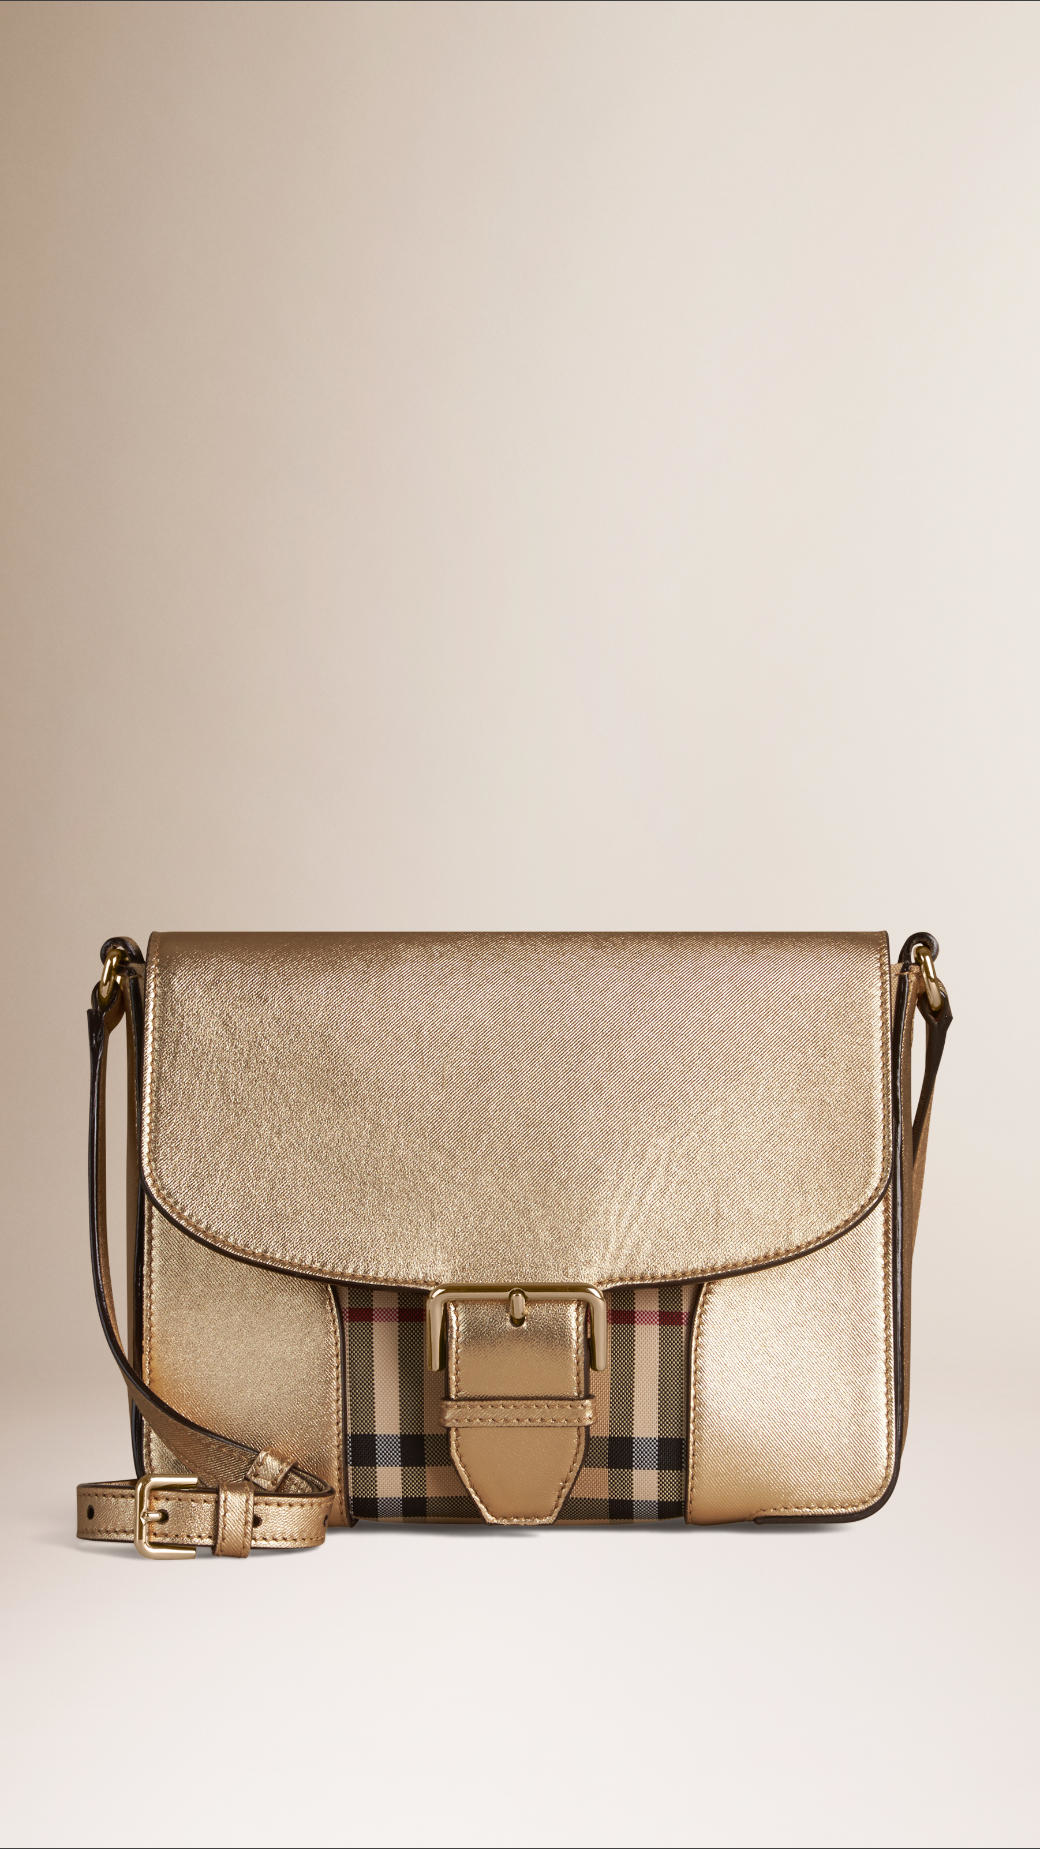 570f724ce5c8 Lyst - Burberry Small Horseferry Check And Leather Crossbody Bag in Natural